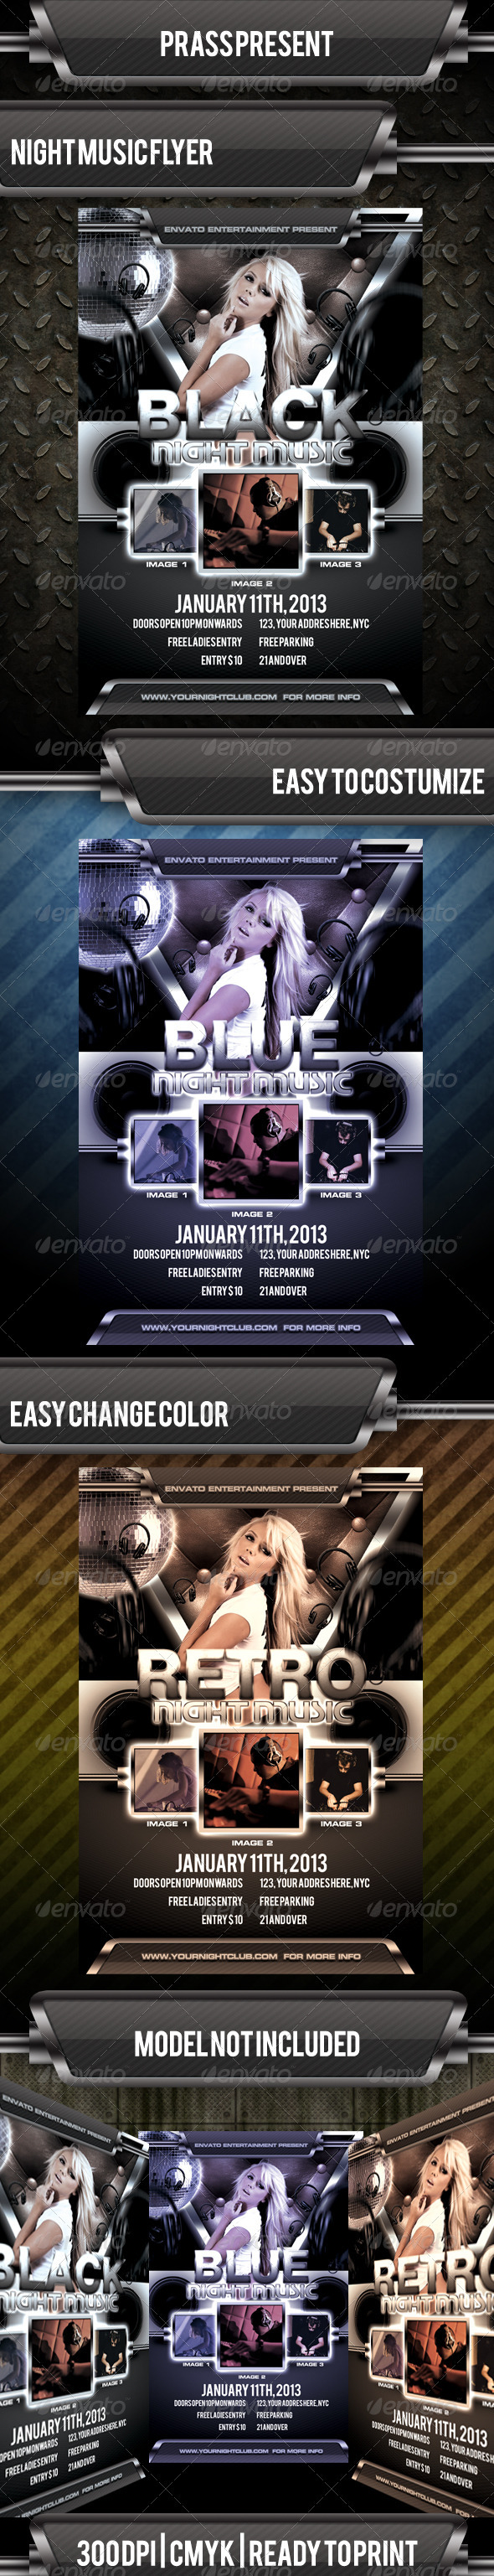 Black Night Music Flyer Template - Clubs & Parties Events